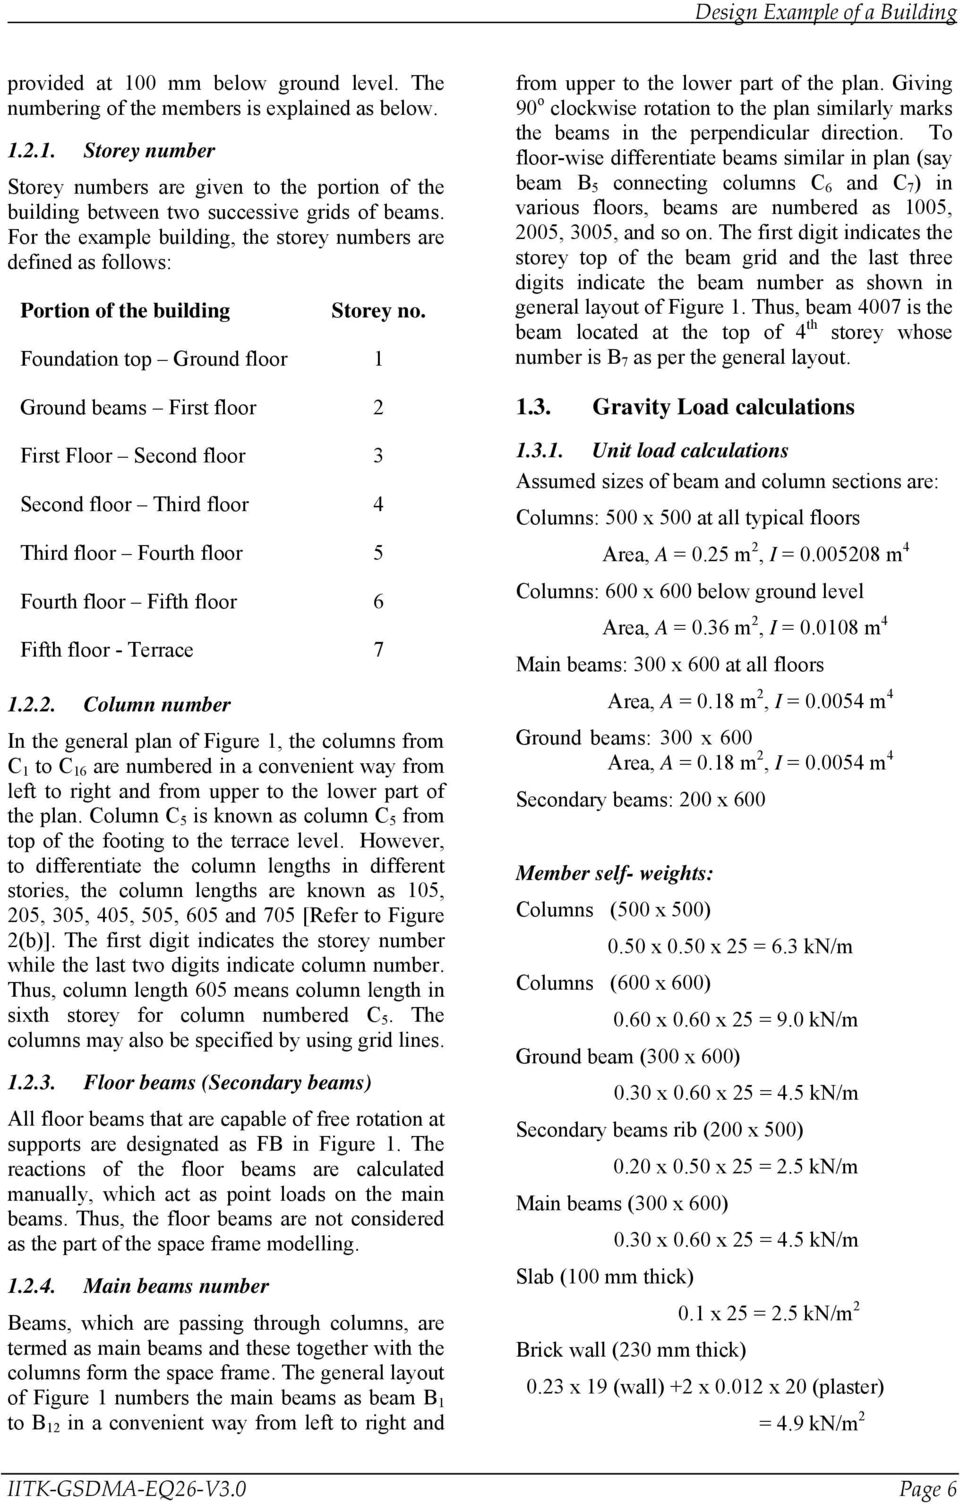 Design Example of a Six Storey Building - PDF